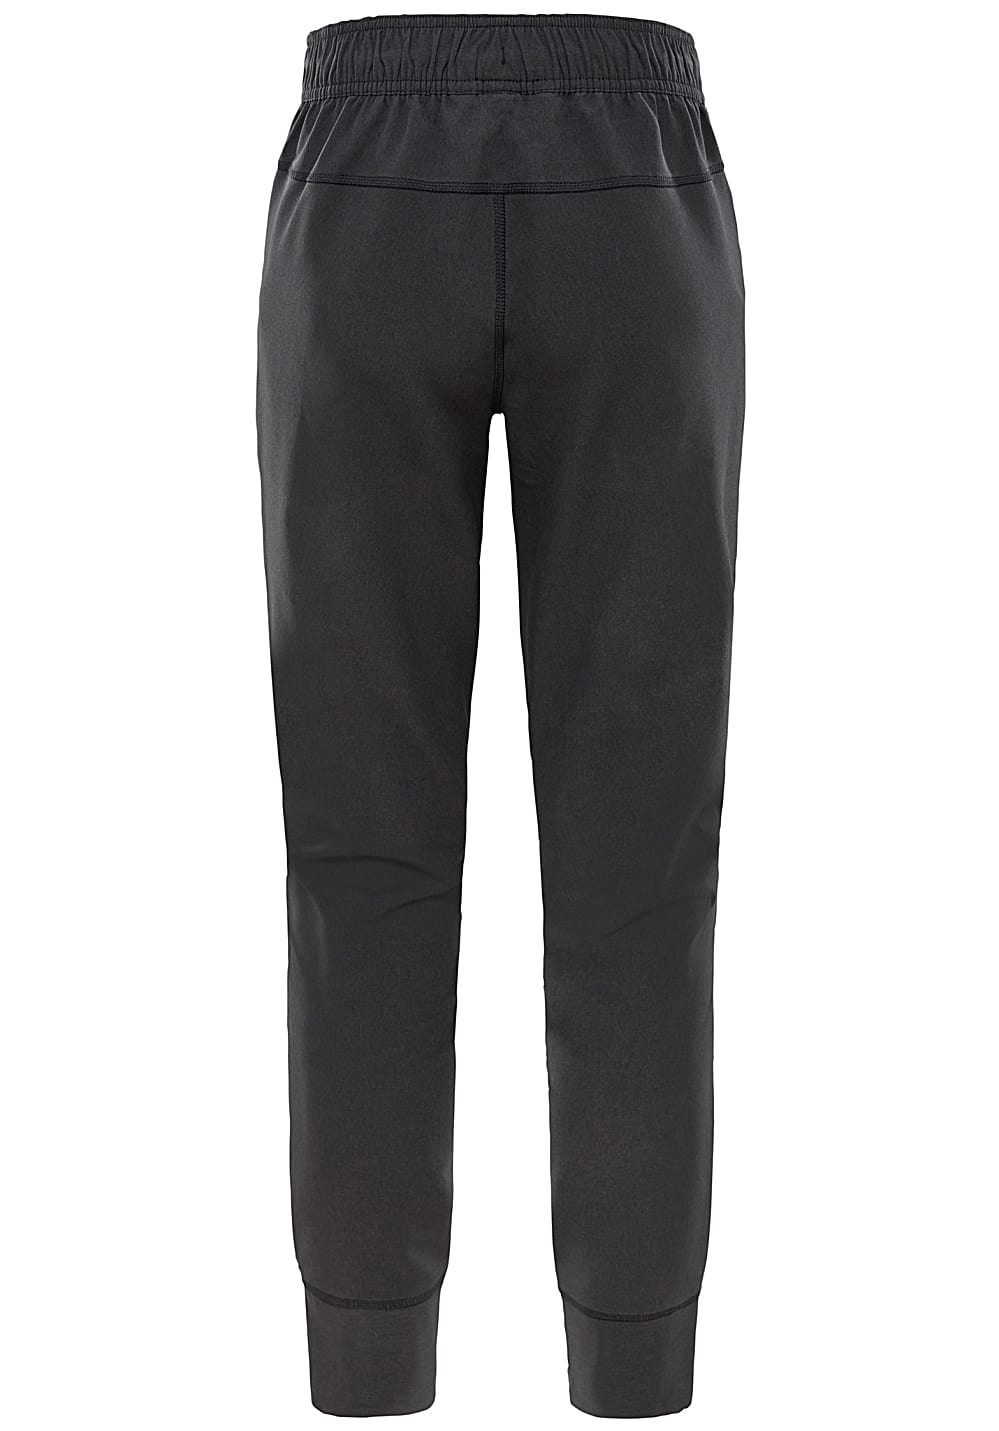 THE NORTH FACE Hikesteller Winter - Outdoor Pants for Women - Black ... 2f64ff062b13